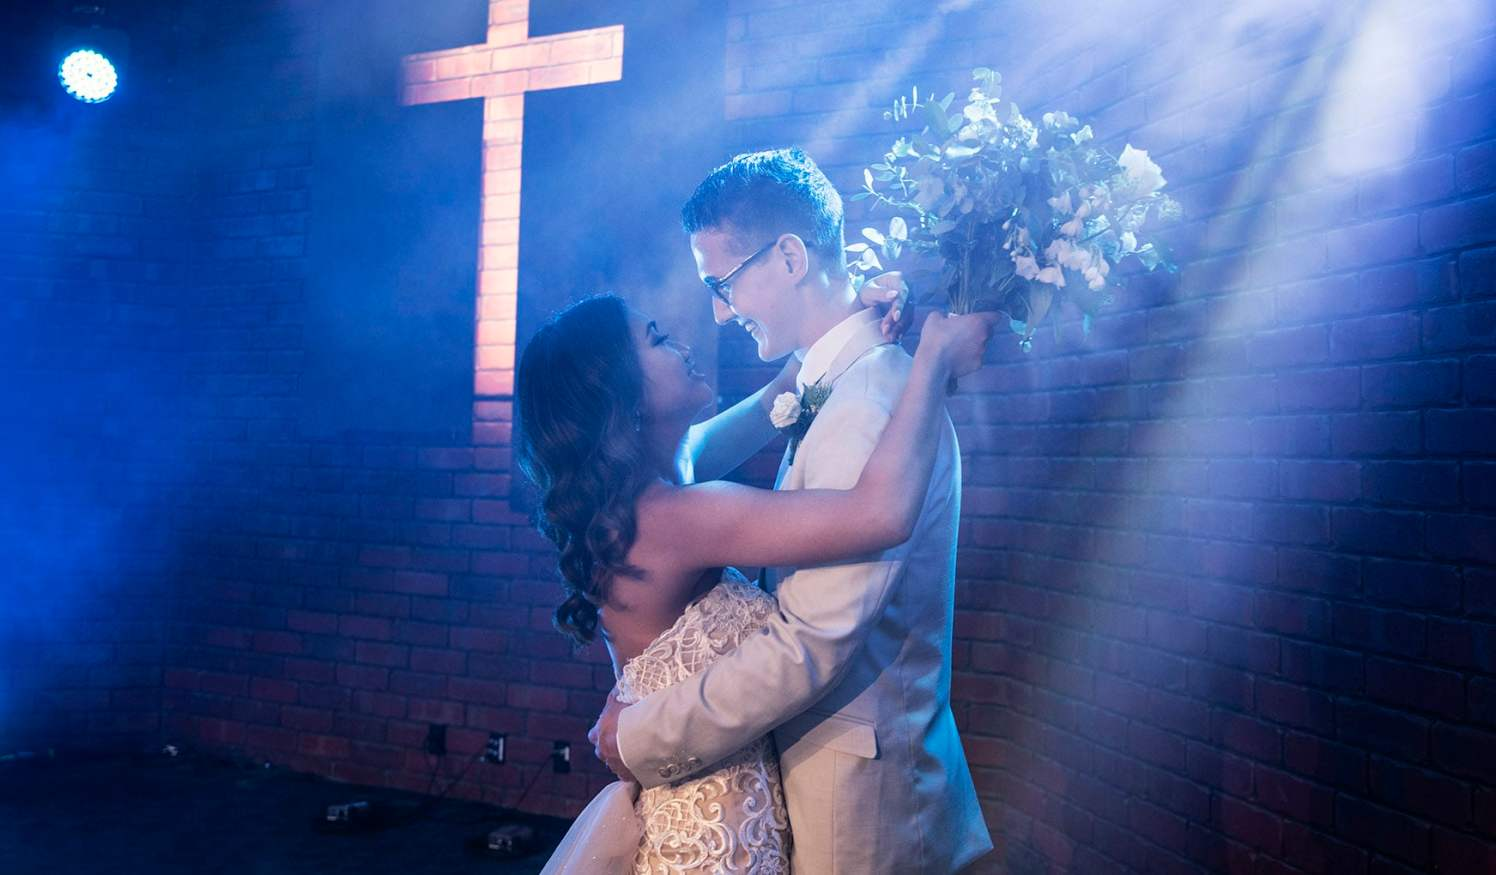 bride and groom under blue lights and smoke